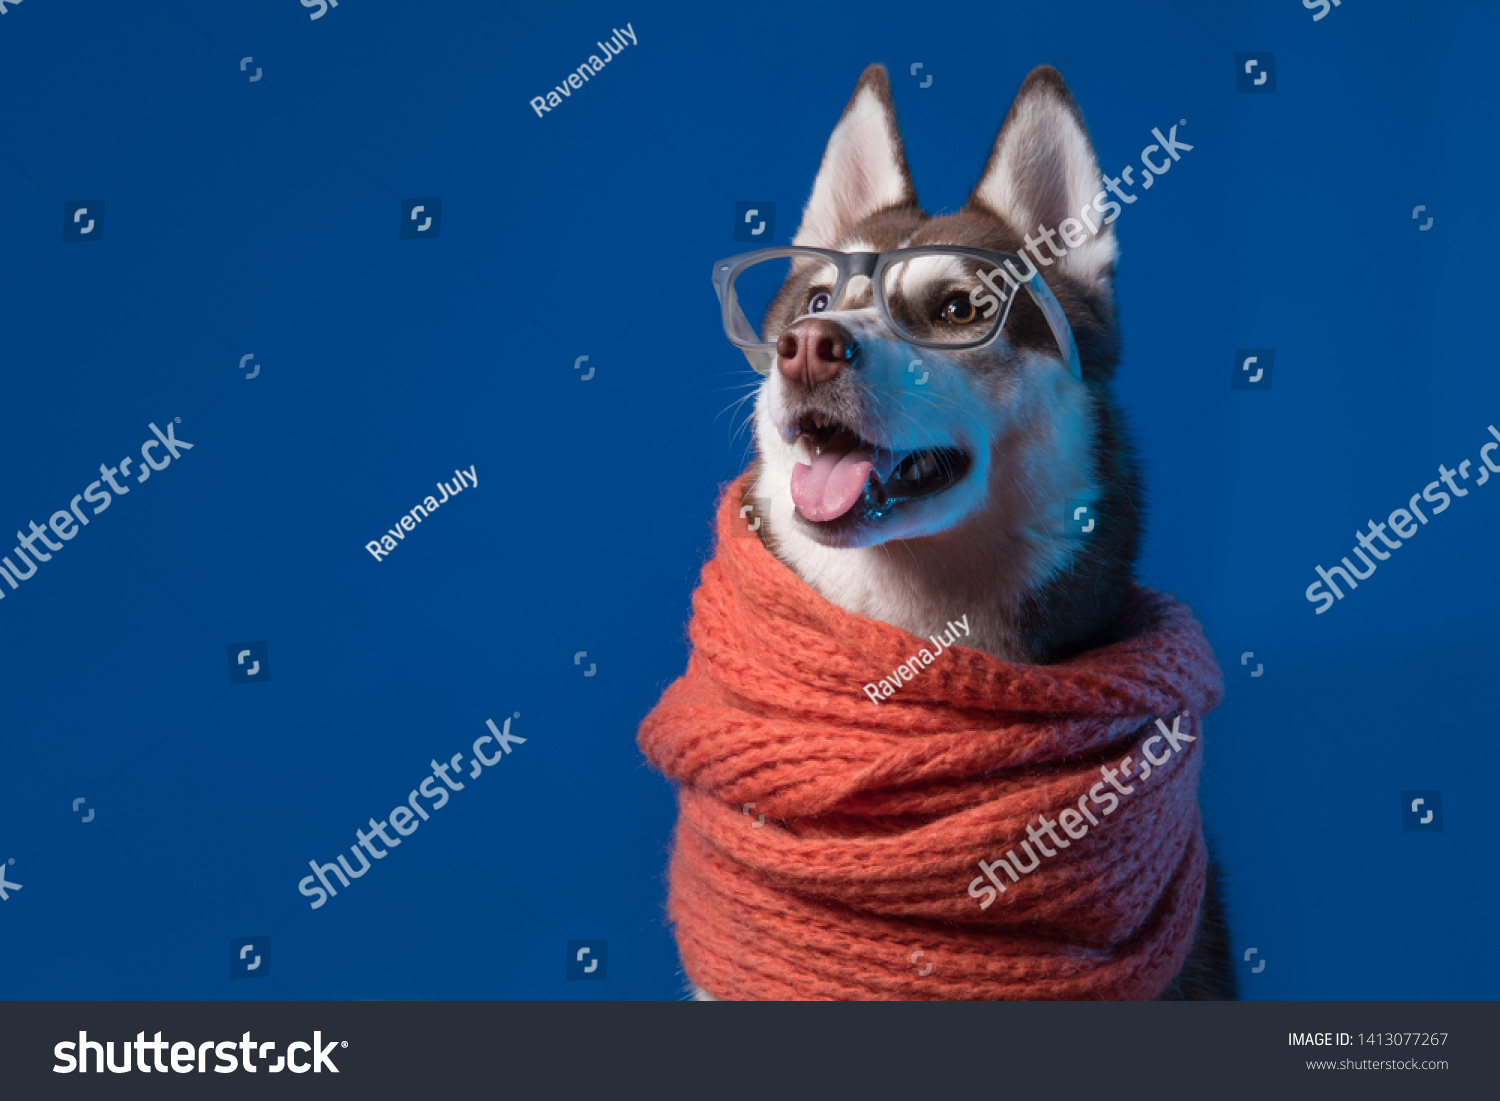 Adorable Siberian Husky dog with warm orange scarf and glasses on blue background. Dog looks left